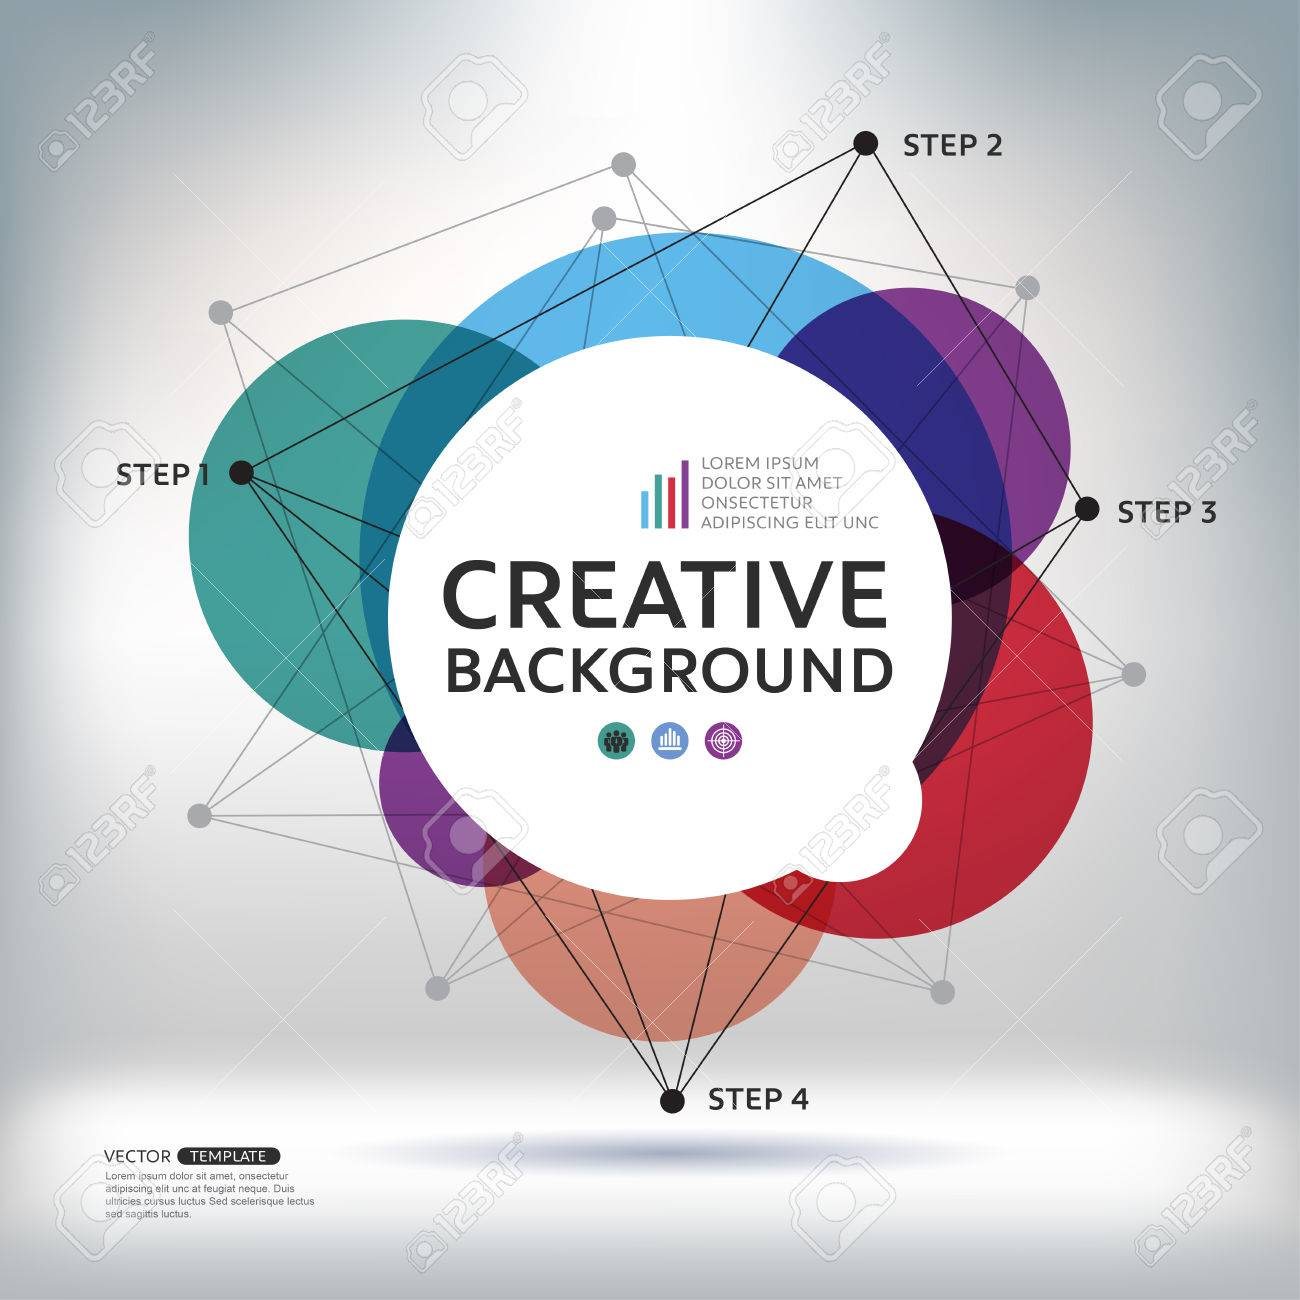 abstract background and geometric shapes design layout for business royalty free cliparts vectors and stock illustration image 57018880 123rf com